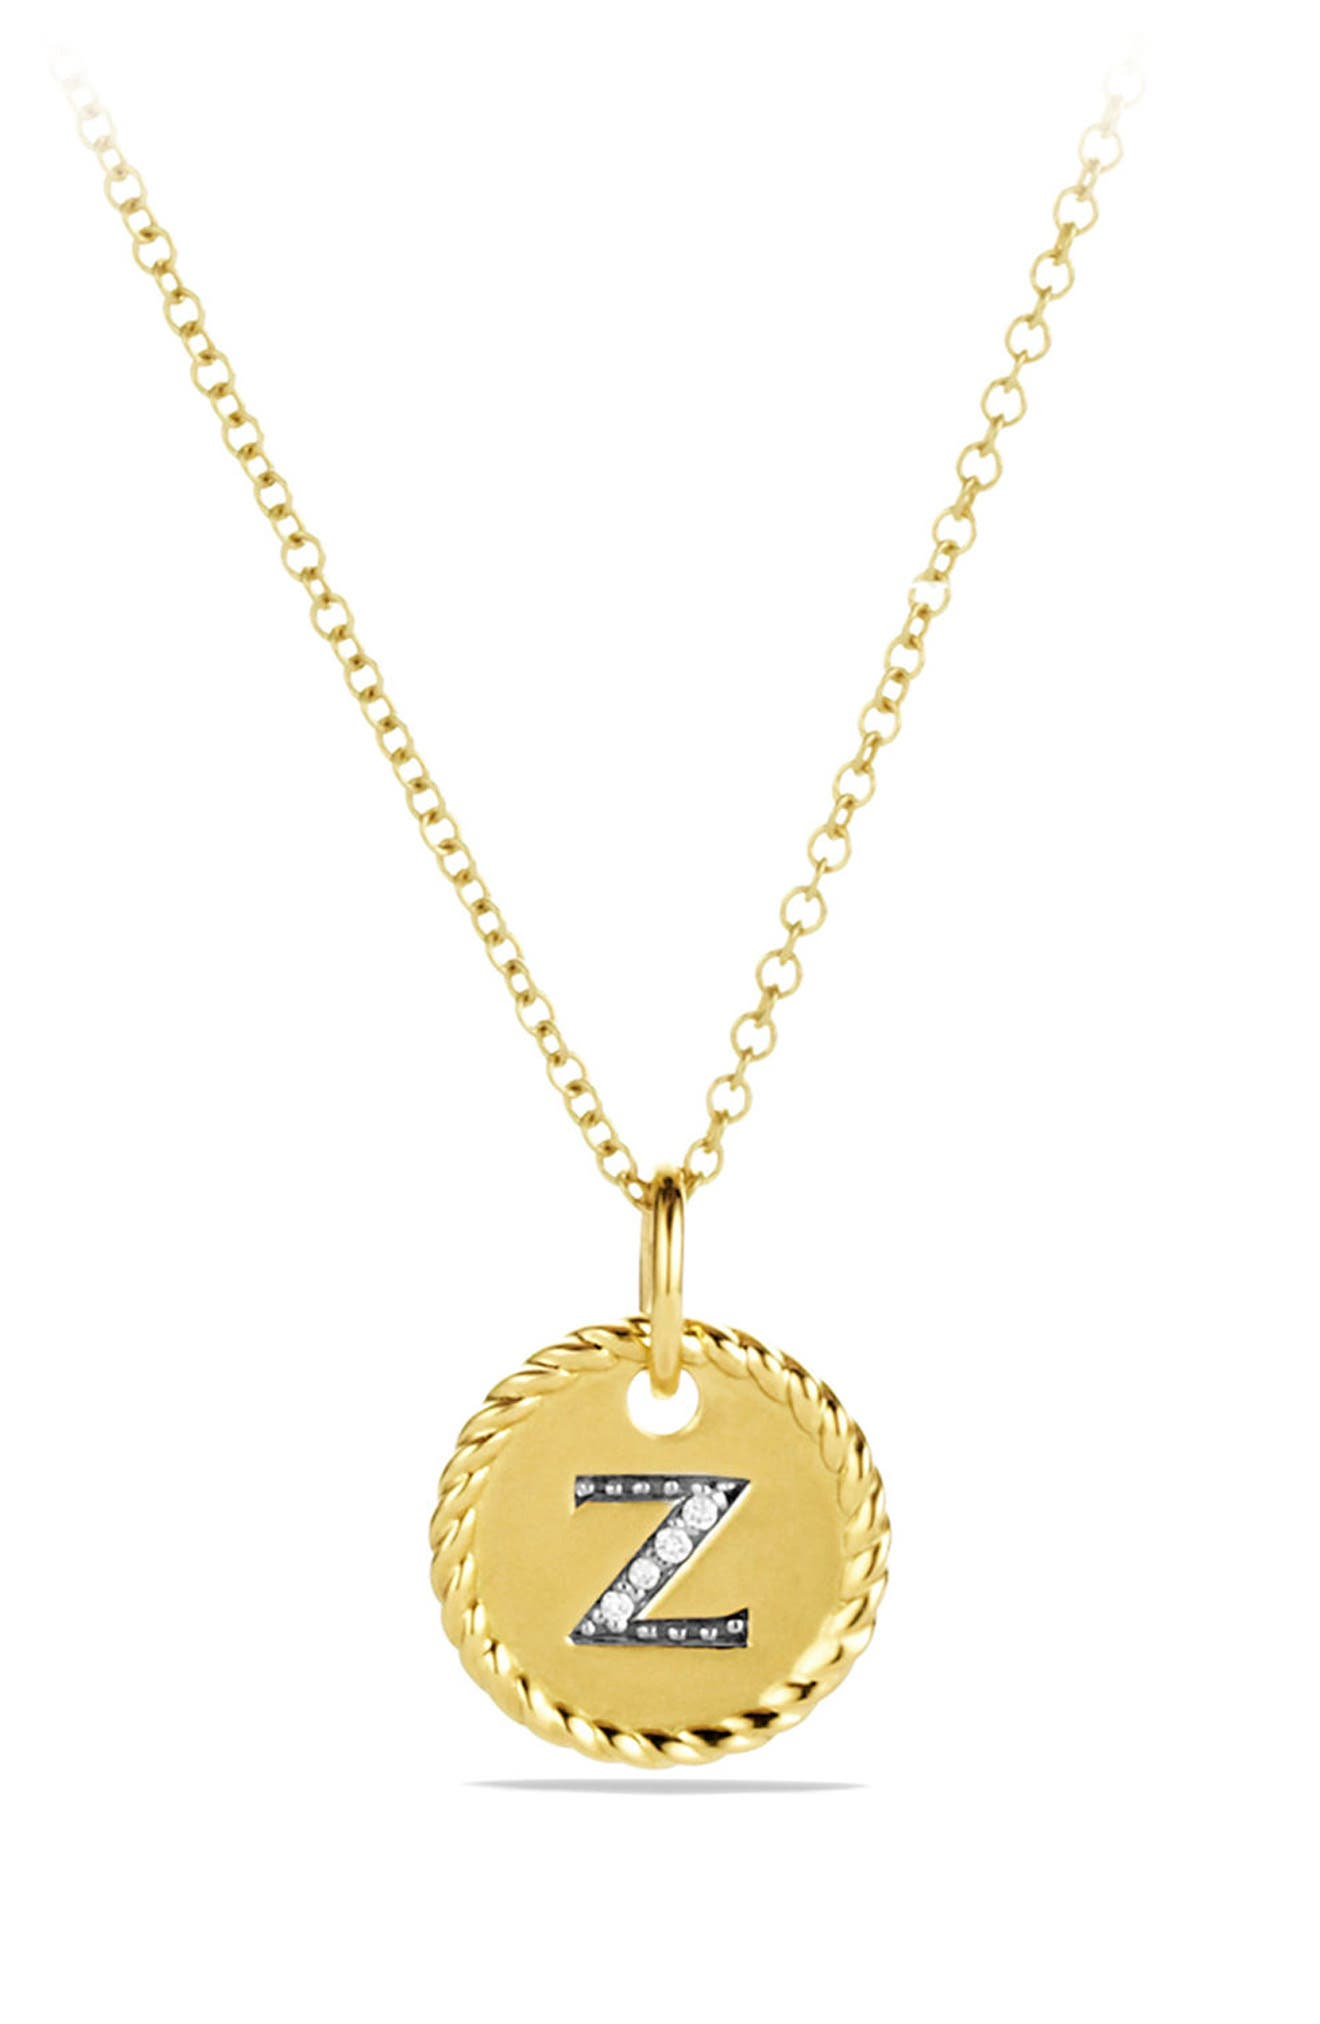 Initial Charm Necklace with Diamonds in 18K Gold,                             Main thumbnail 1, color,                             735